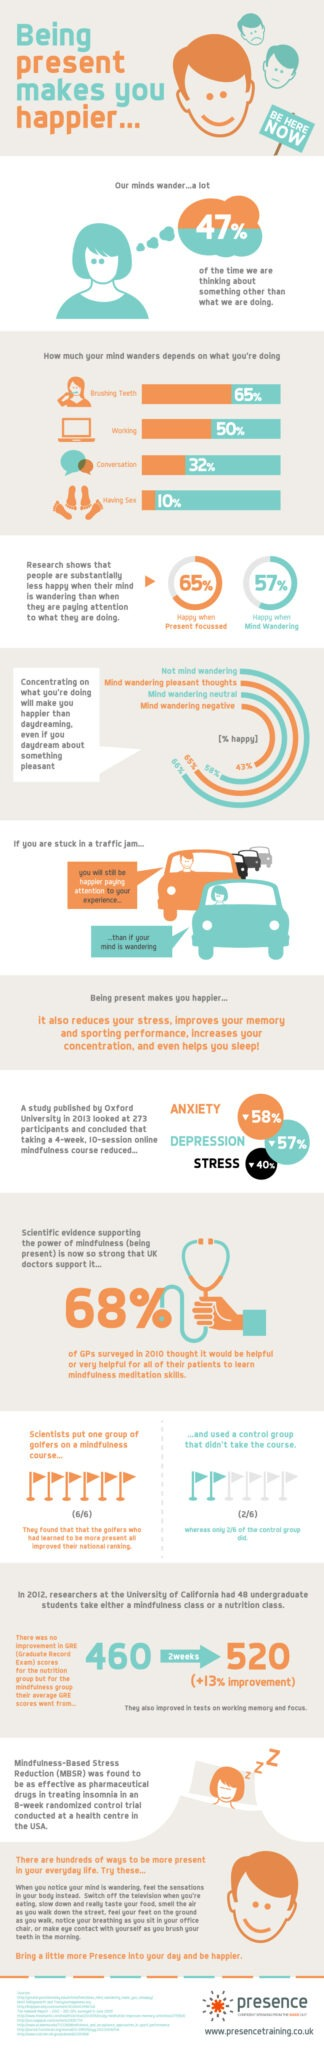 Being Present Makes You Happier ~ https://healthpositiveinfo.com/infographic-being-present-happier.html